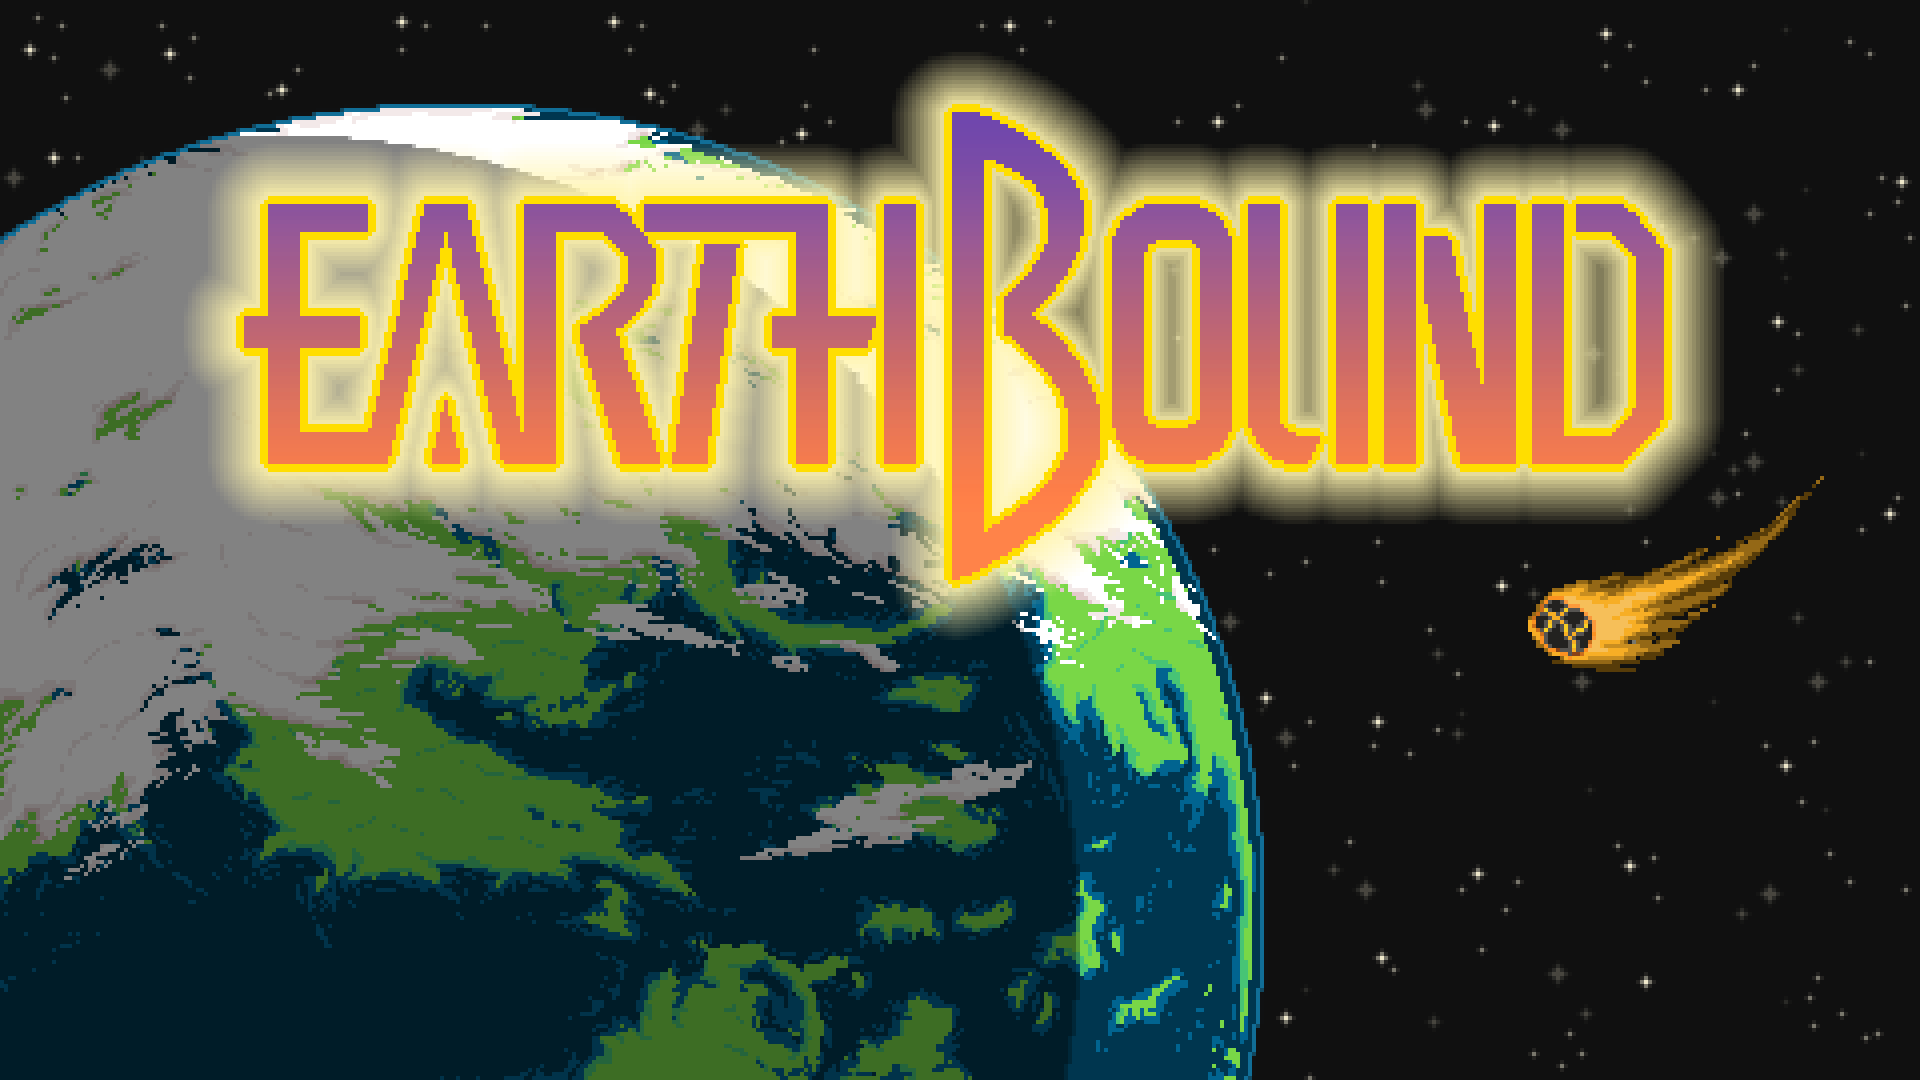 Here S A Earthbound Wallpaper Tribute I Did Enjoy Wallpaper Cool Gifs Neon Signs